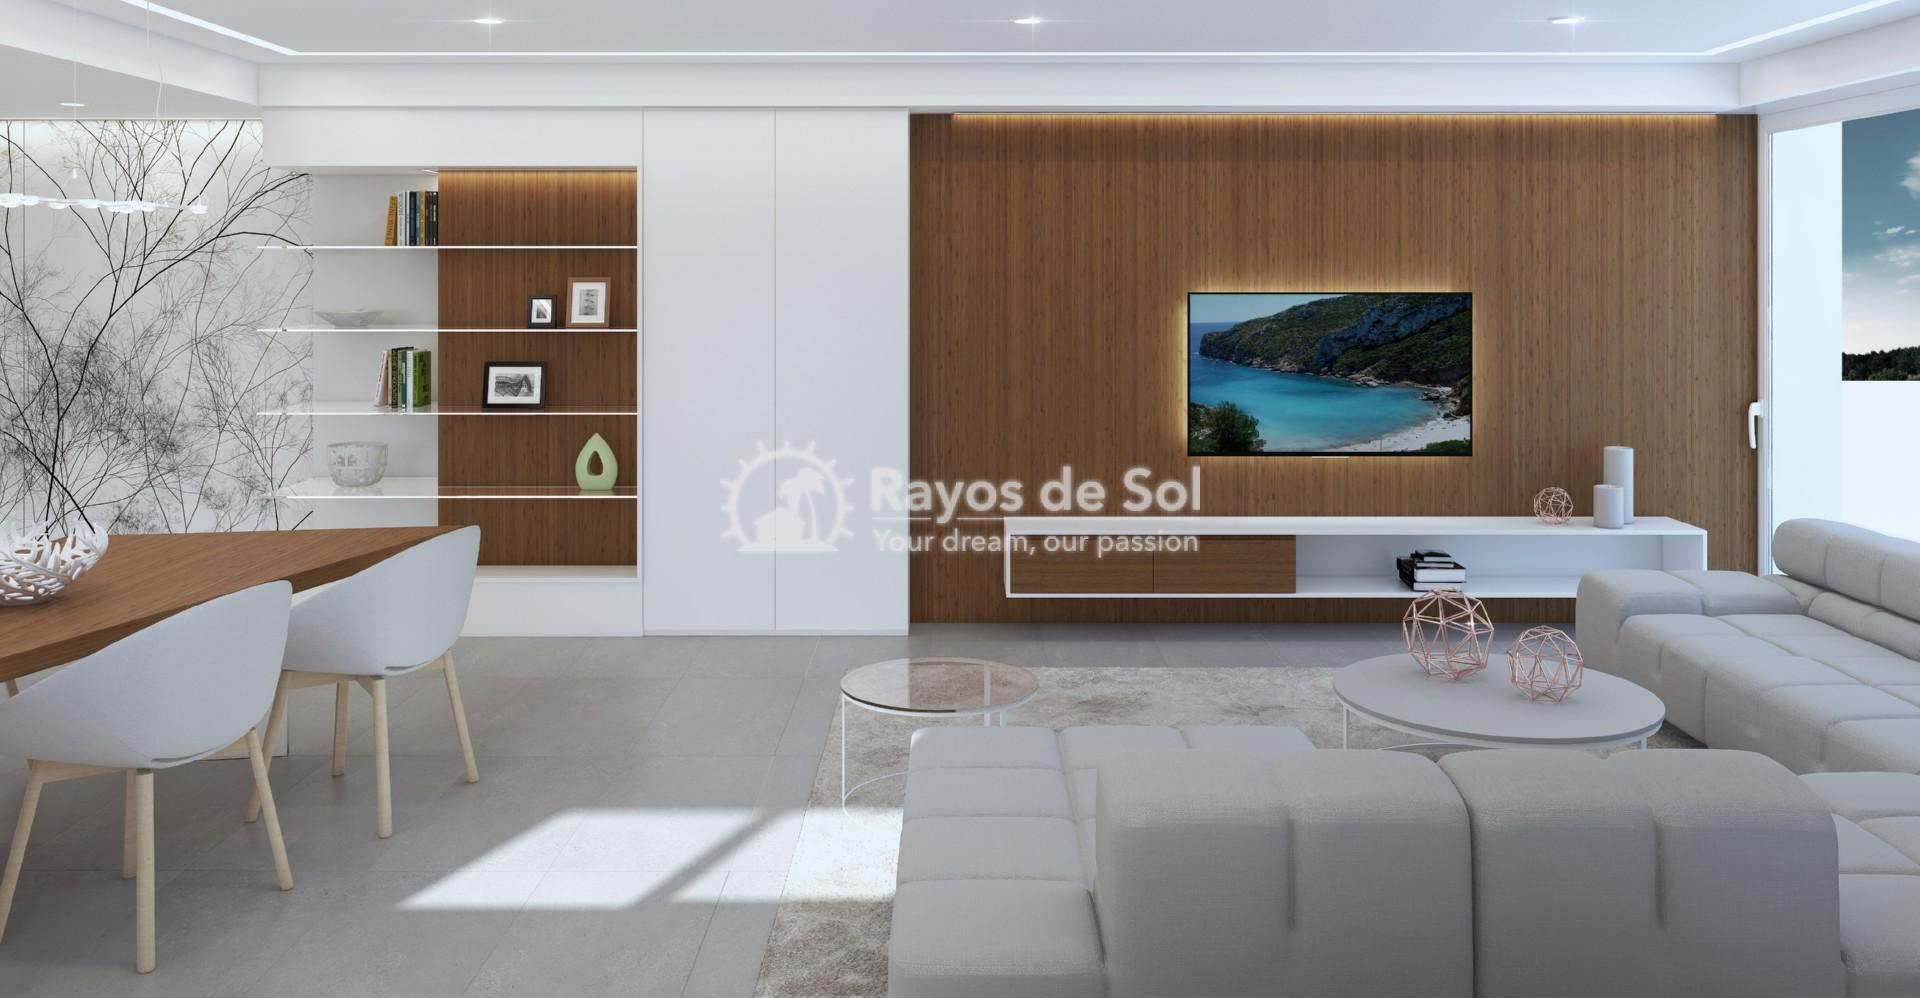 Exclusive apartement in Cumbre del Sol, Benitachell, Costa Blanca (BEVABI3-2) - 3